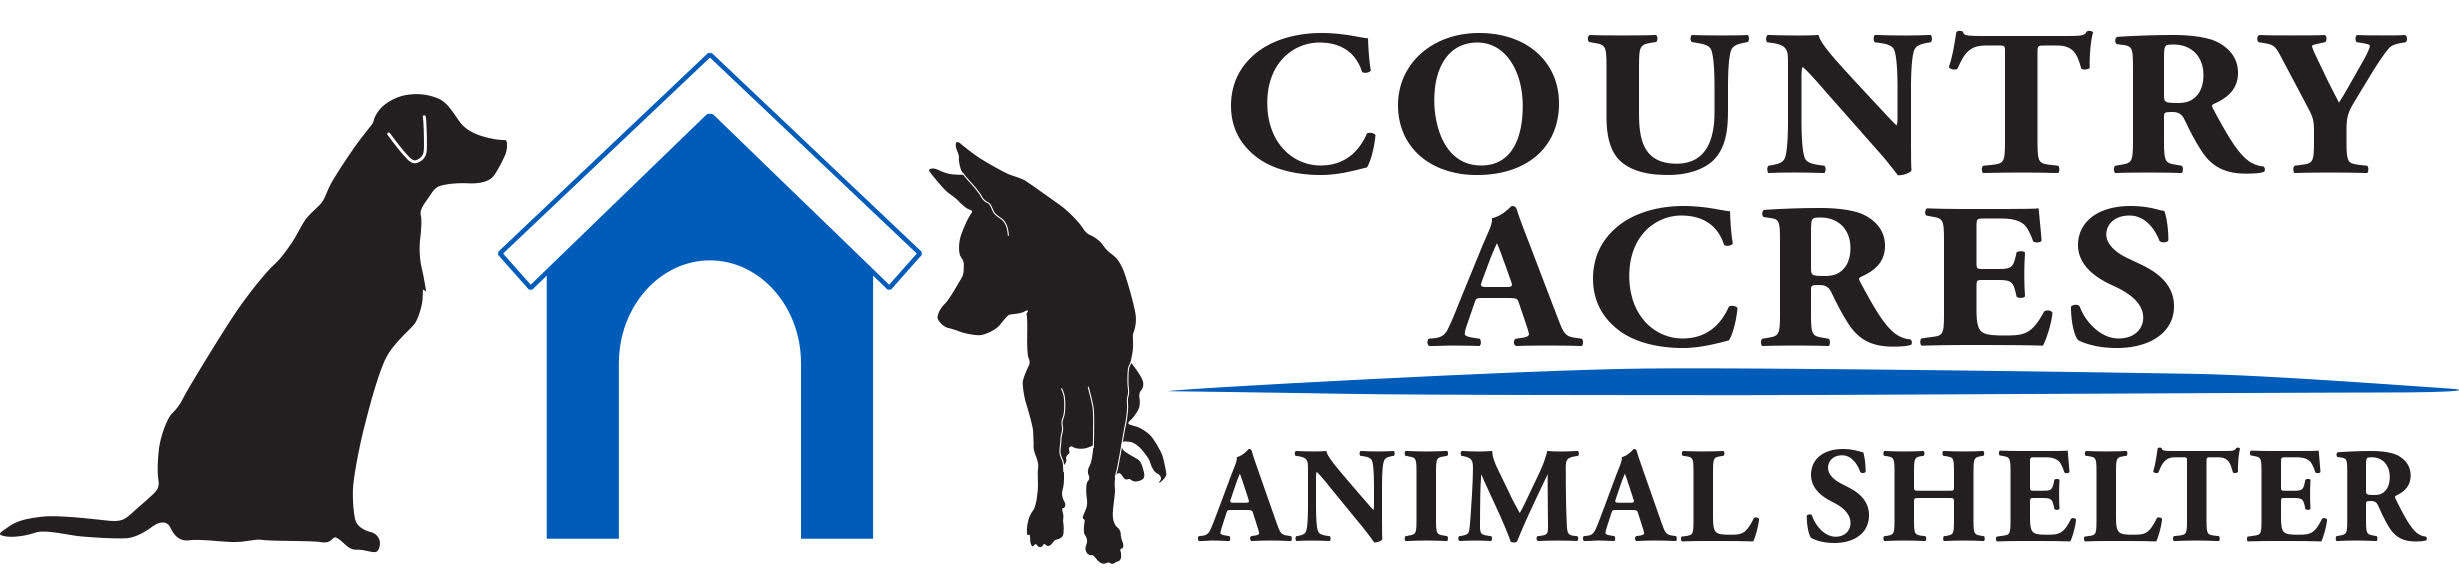 Country Acres Animal Shelter